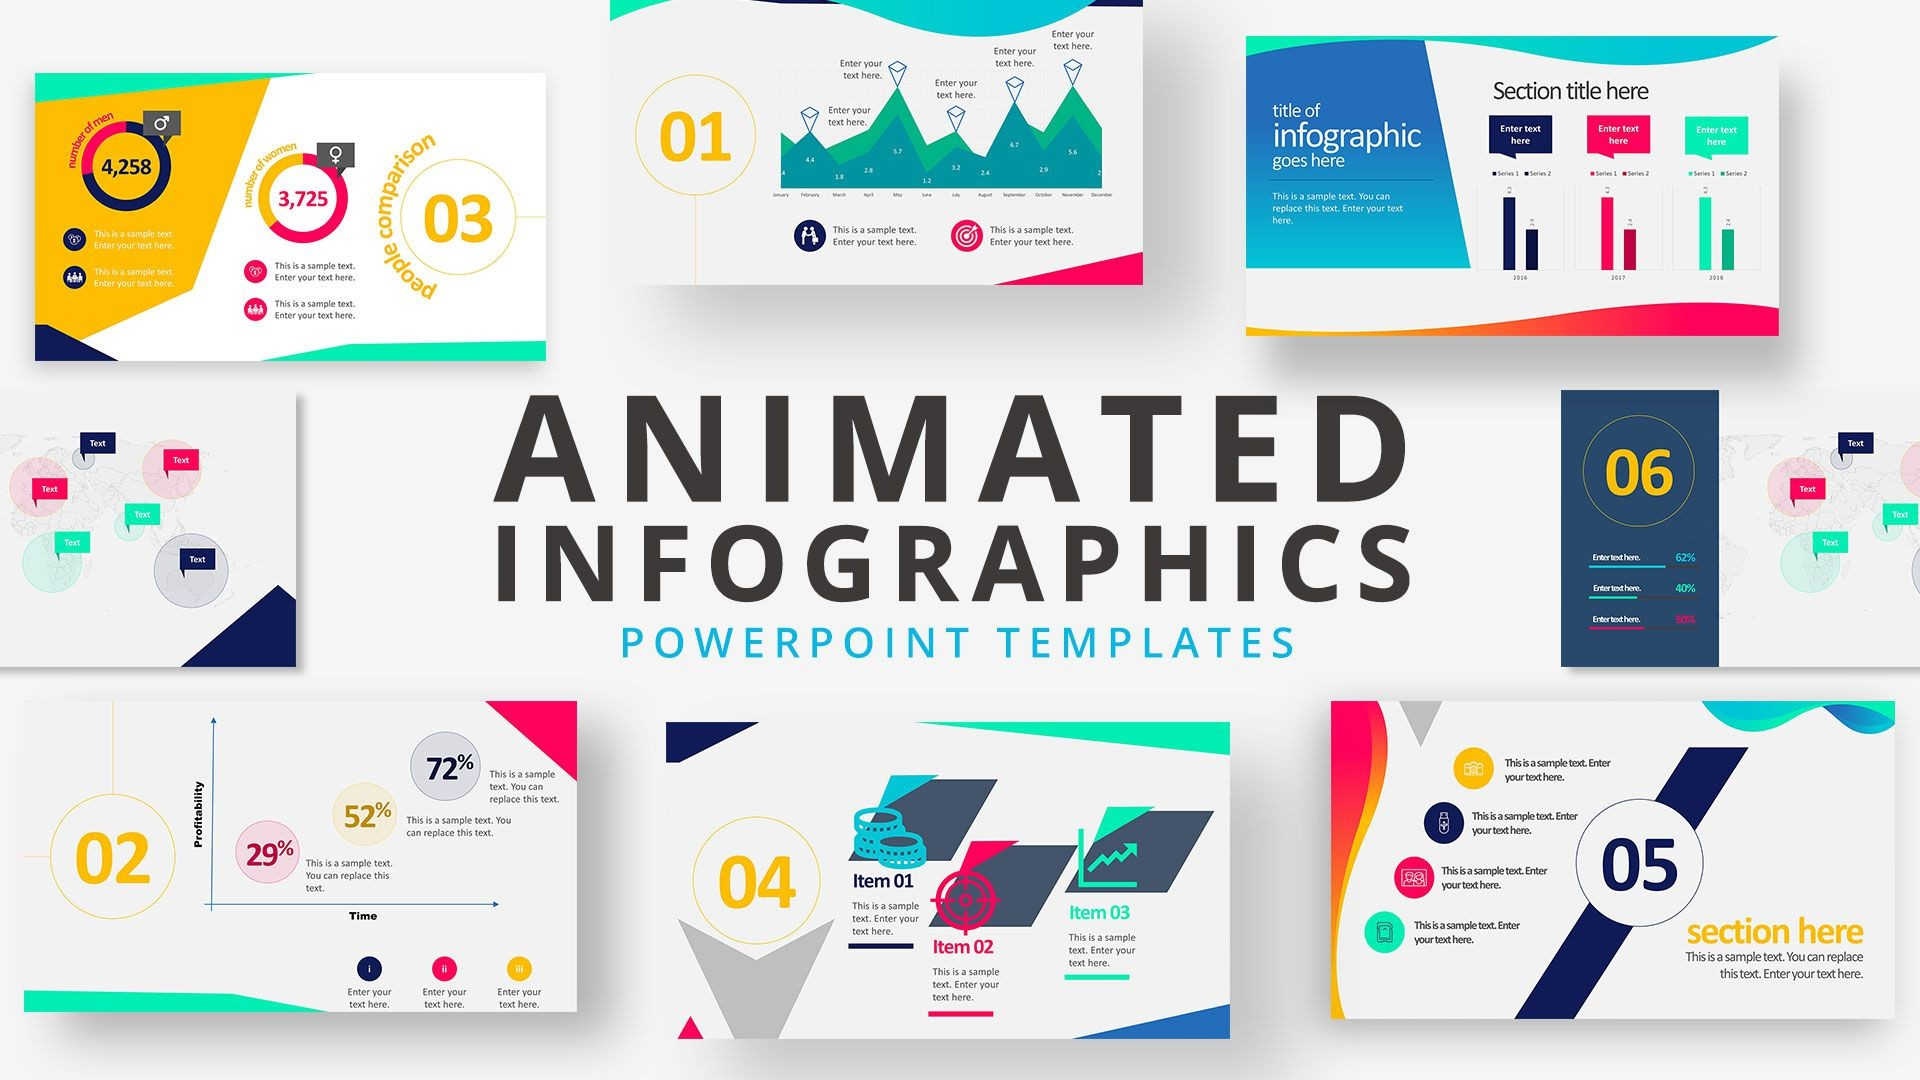 008 Impressive Animation Powerpoint Template Free Concept  Animated Download 2019 20101920